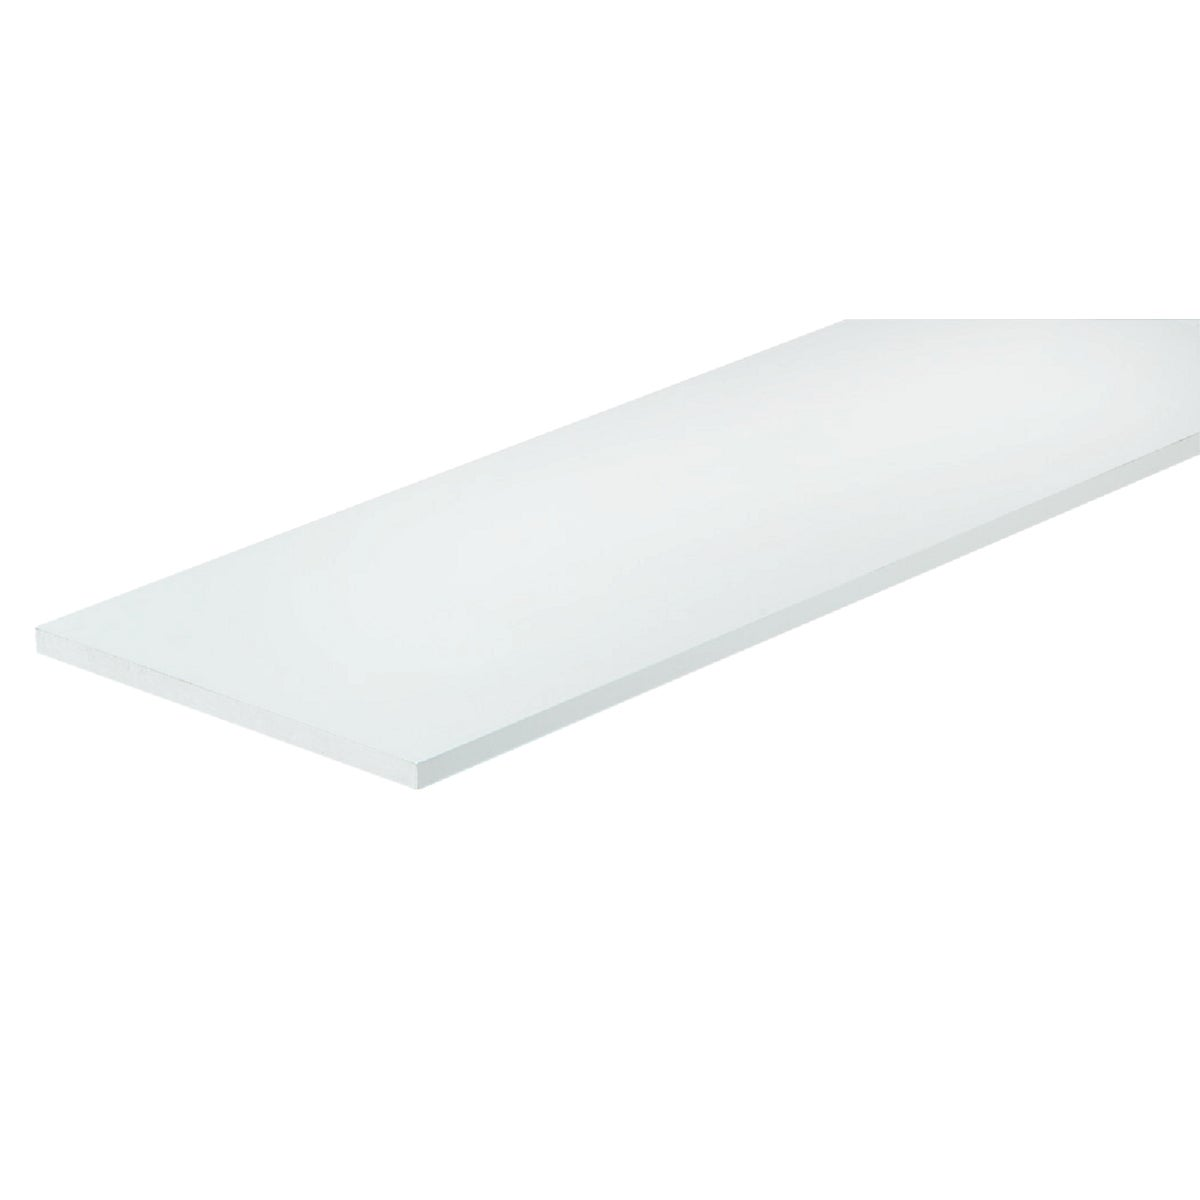 12X48 WHITE SHELF